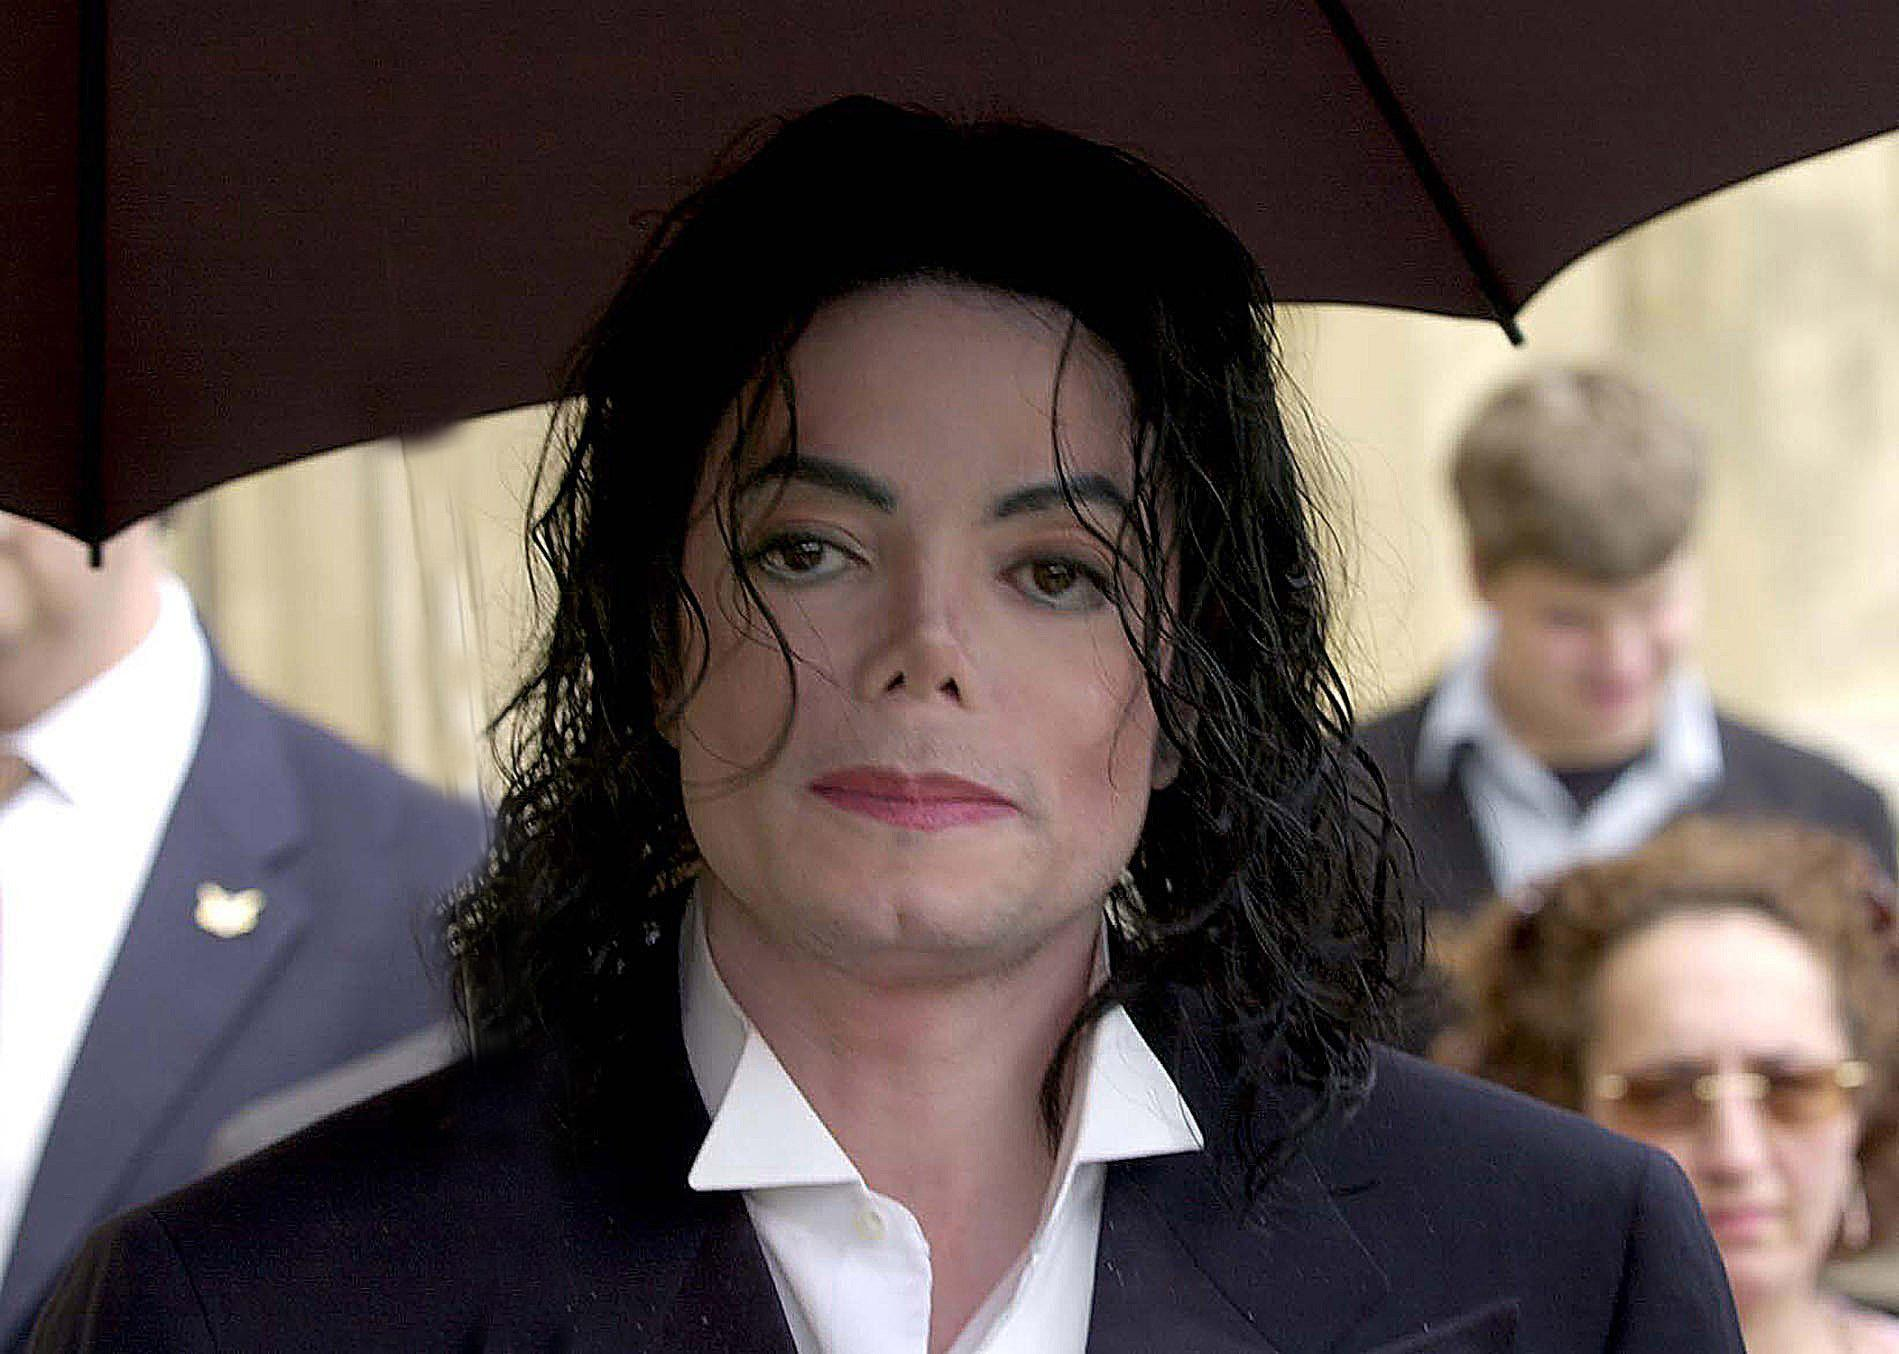 Michael Jackson defended sharing his bed with kids as 'beautiful thing' and hit out at 'ignorant' abuse claims